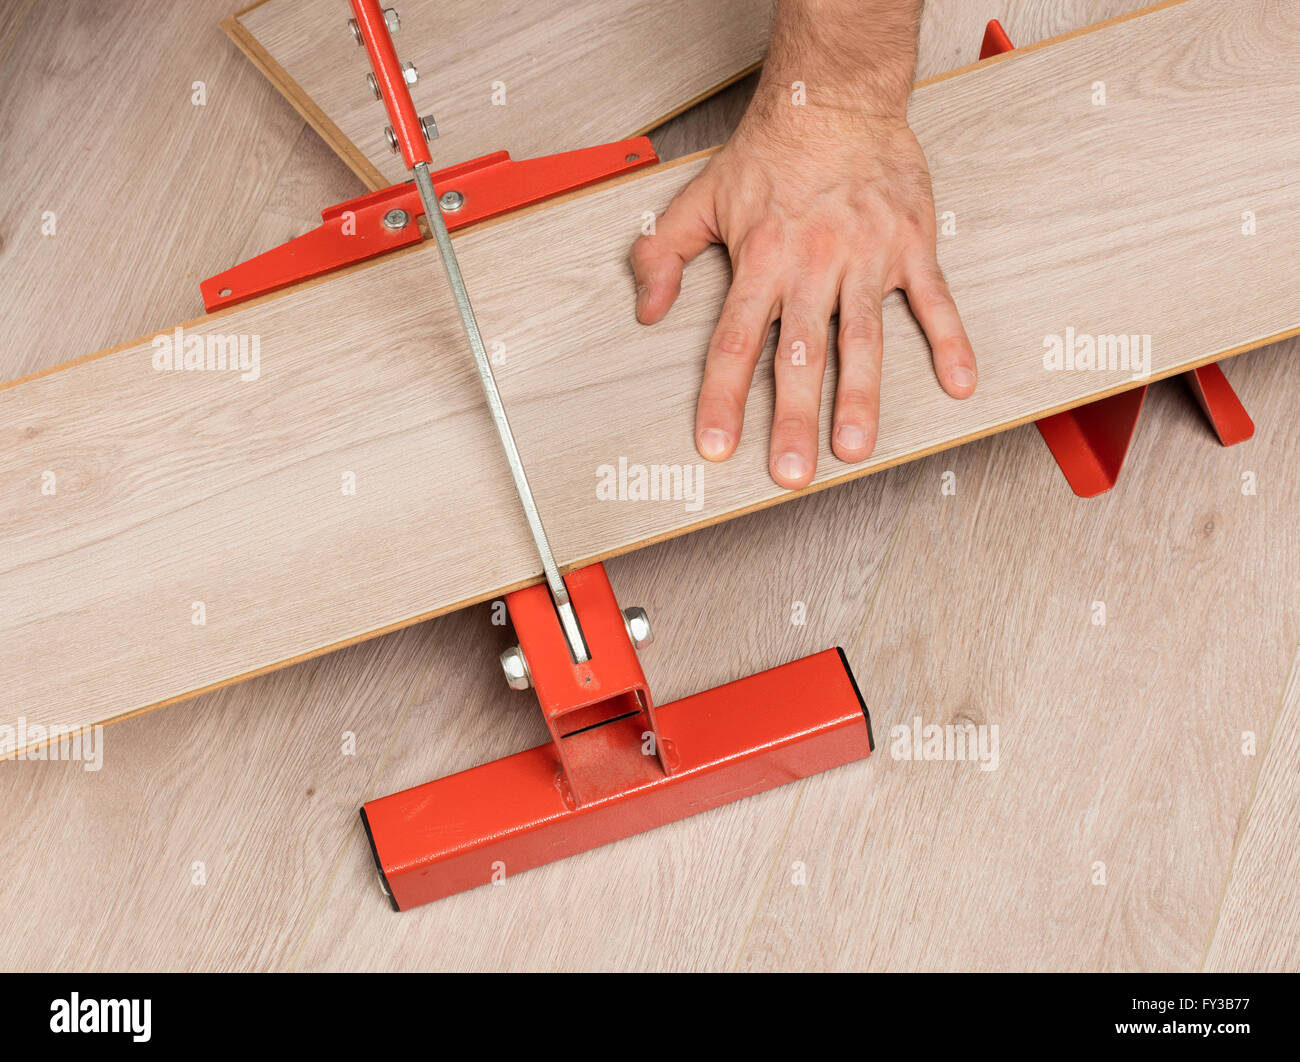 Red tool for cutting laminate on a laminate floor - Stock Image